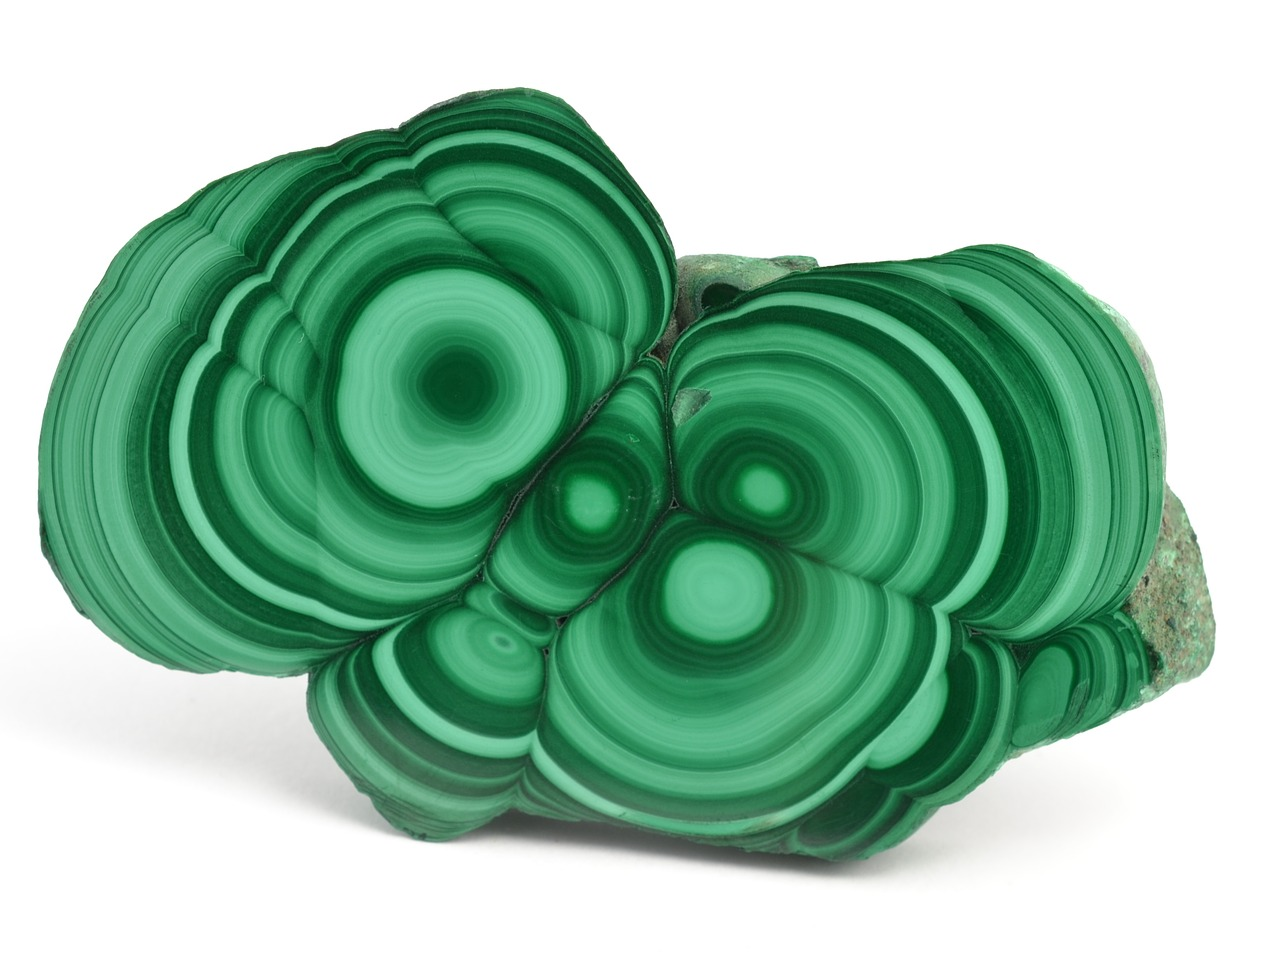 malachite precious stone semi-precious stone free photo